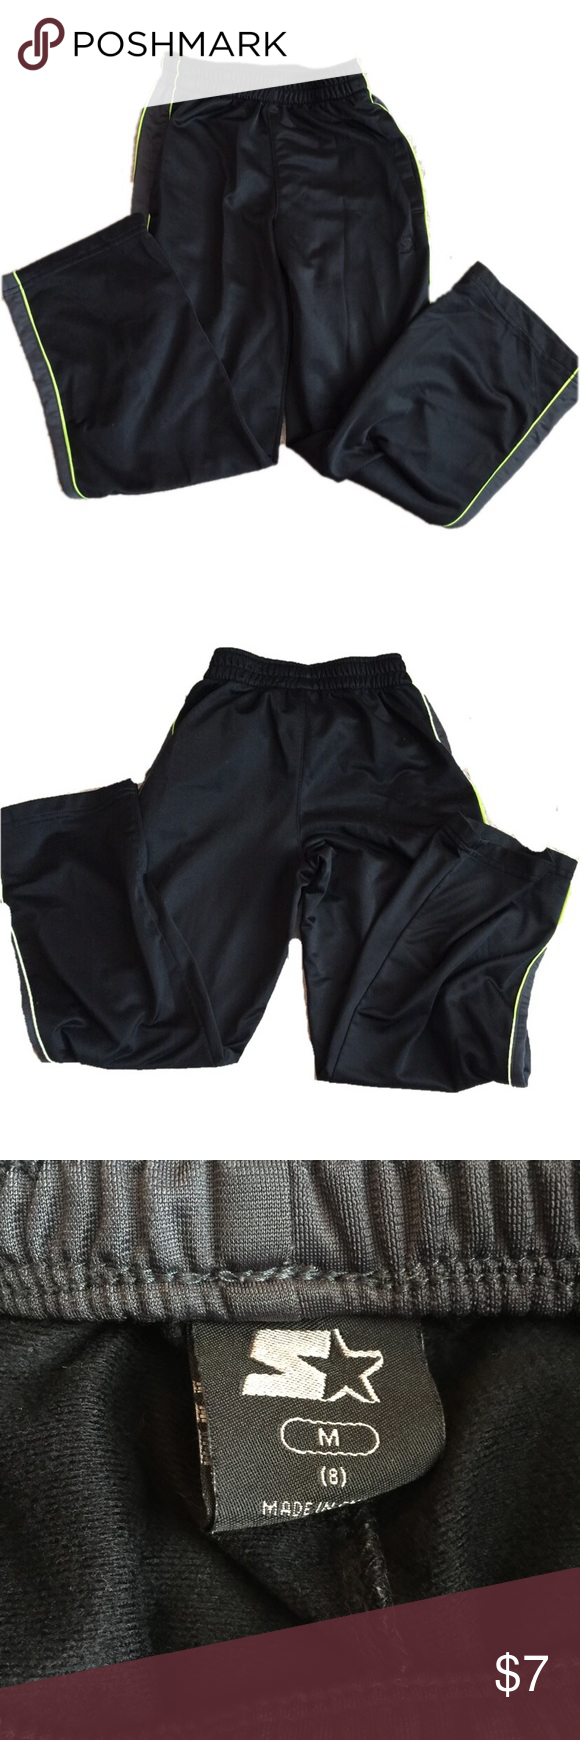 Starter athletic pants Black athletic pants with green stripe down leg. GUC with only minor washwear Bottoms Sweatpants & Joggers